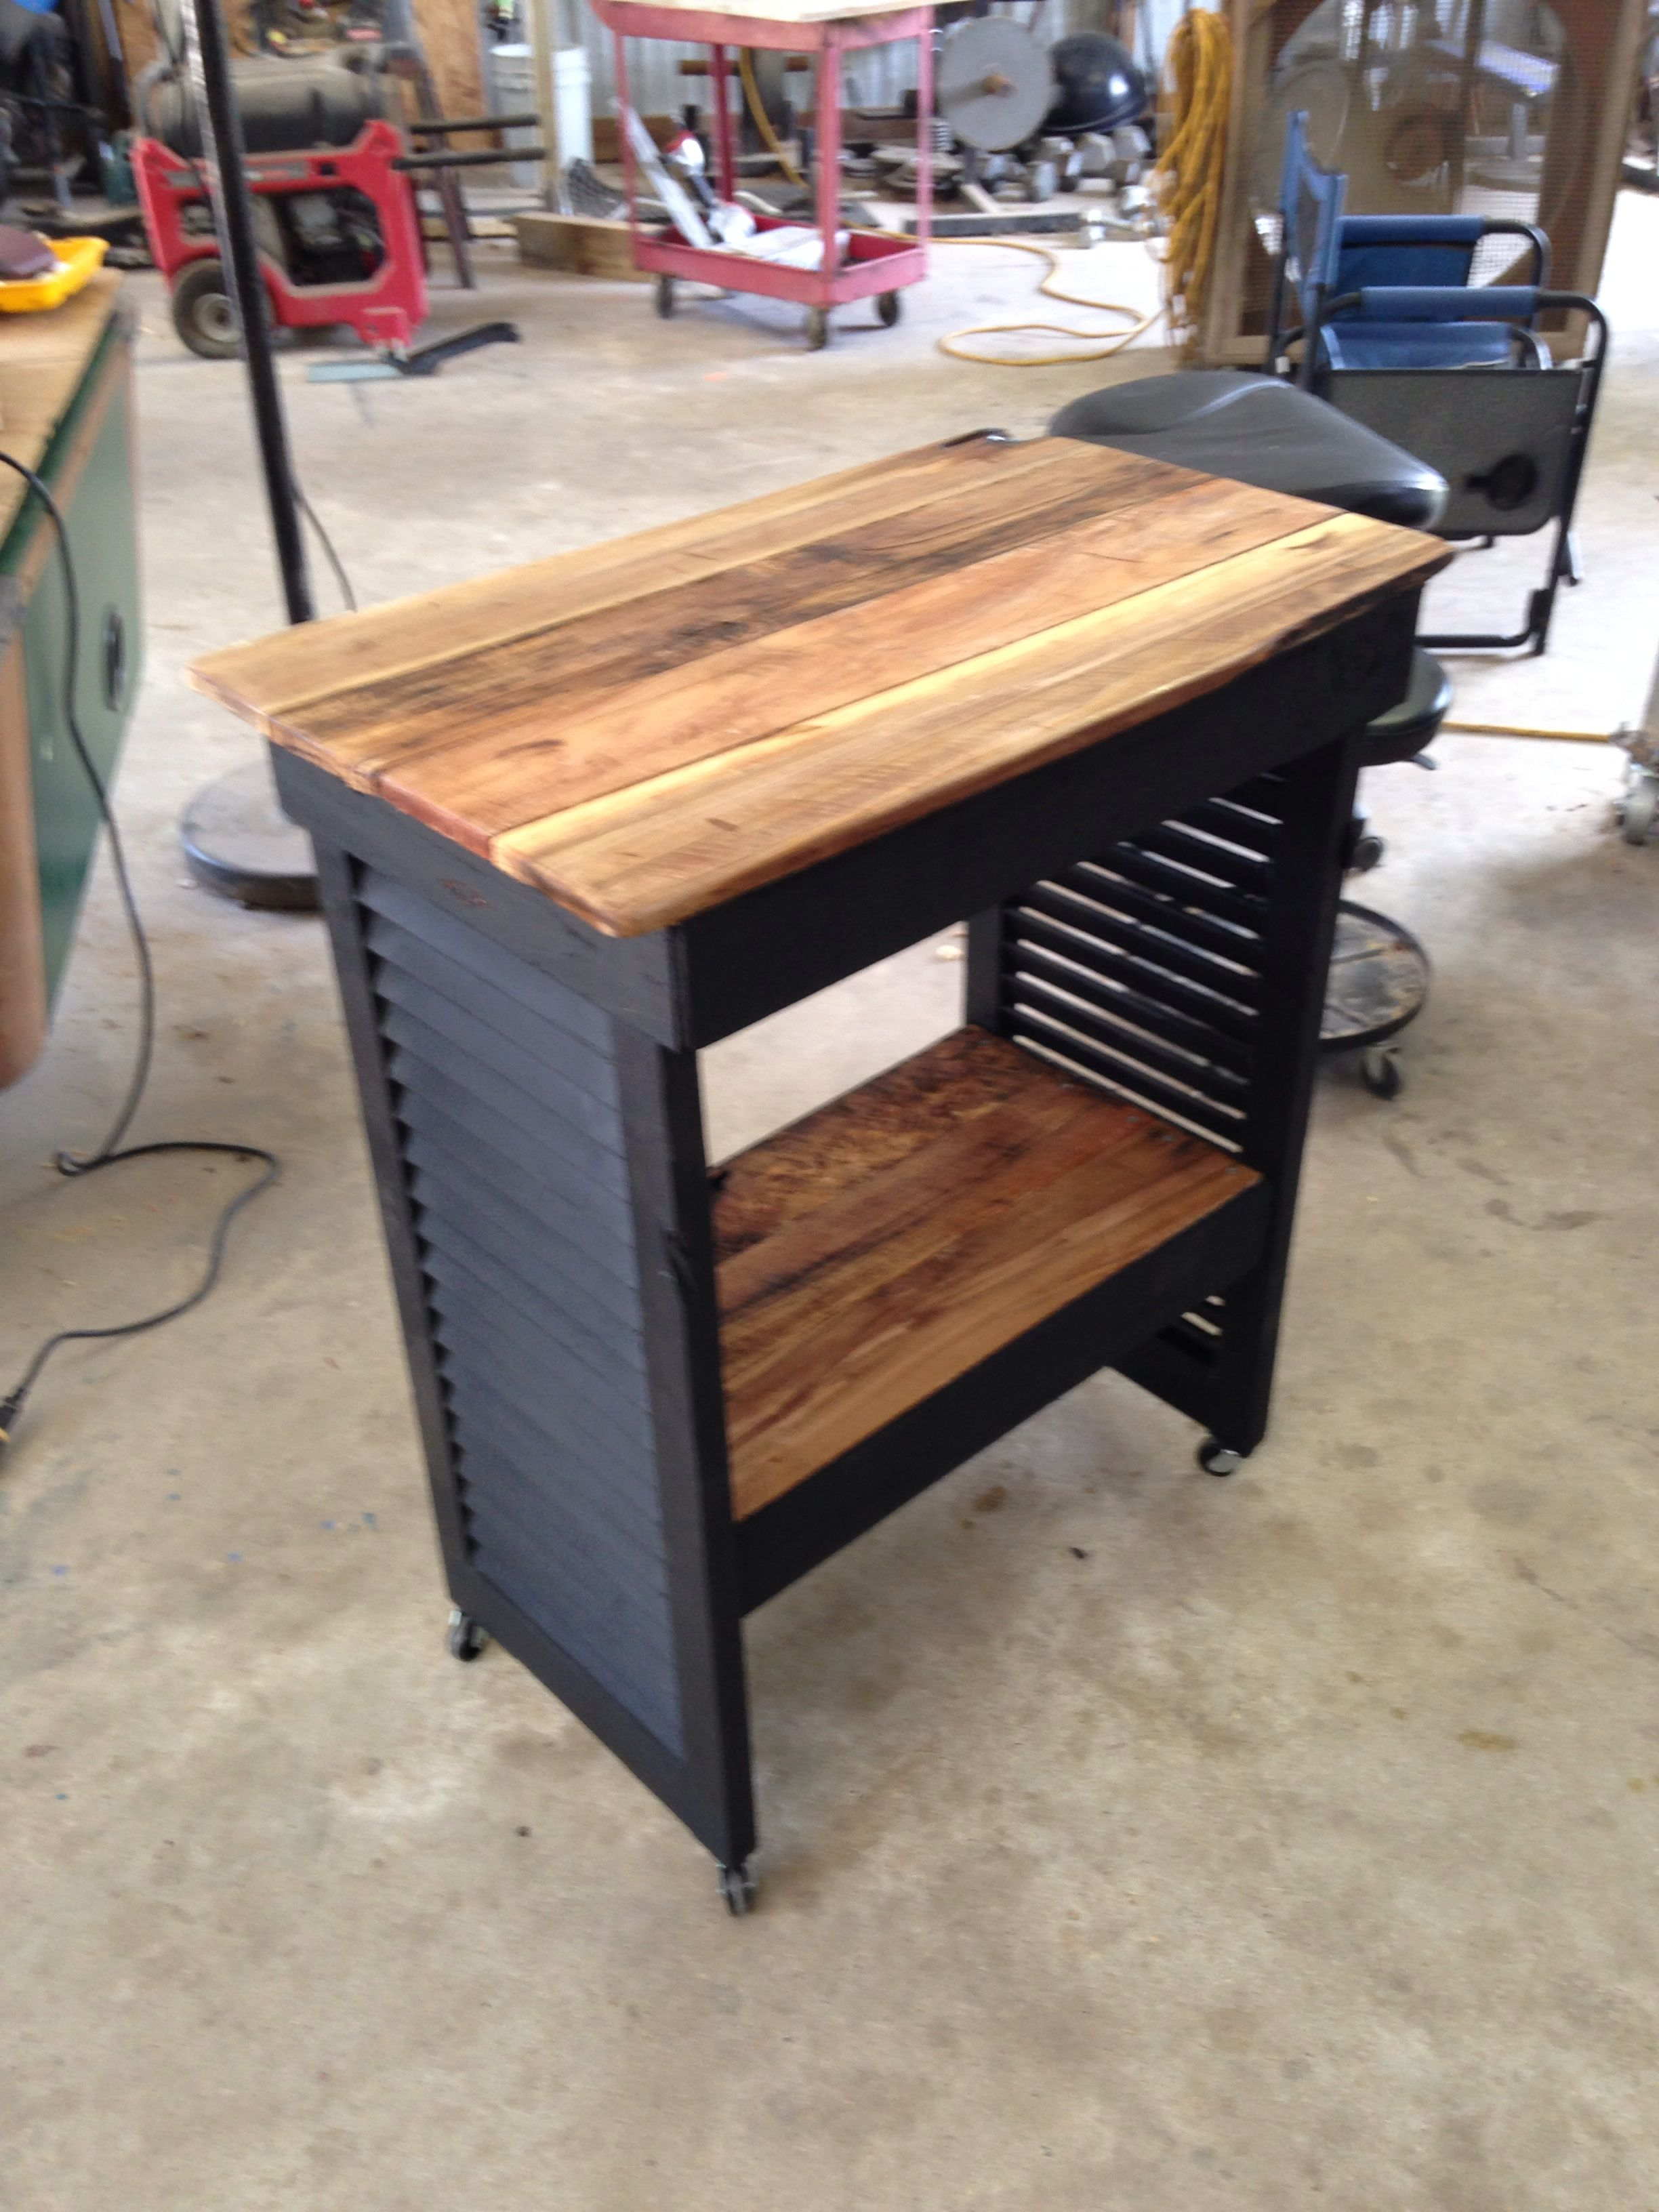 Shutter Table With Cedar Top And Shelf For Sale From Charla Griffin Designs Shutter Table Shelves Decor